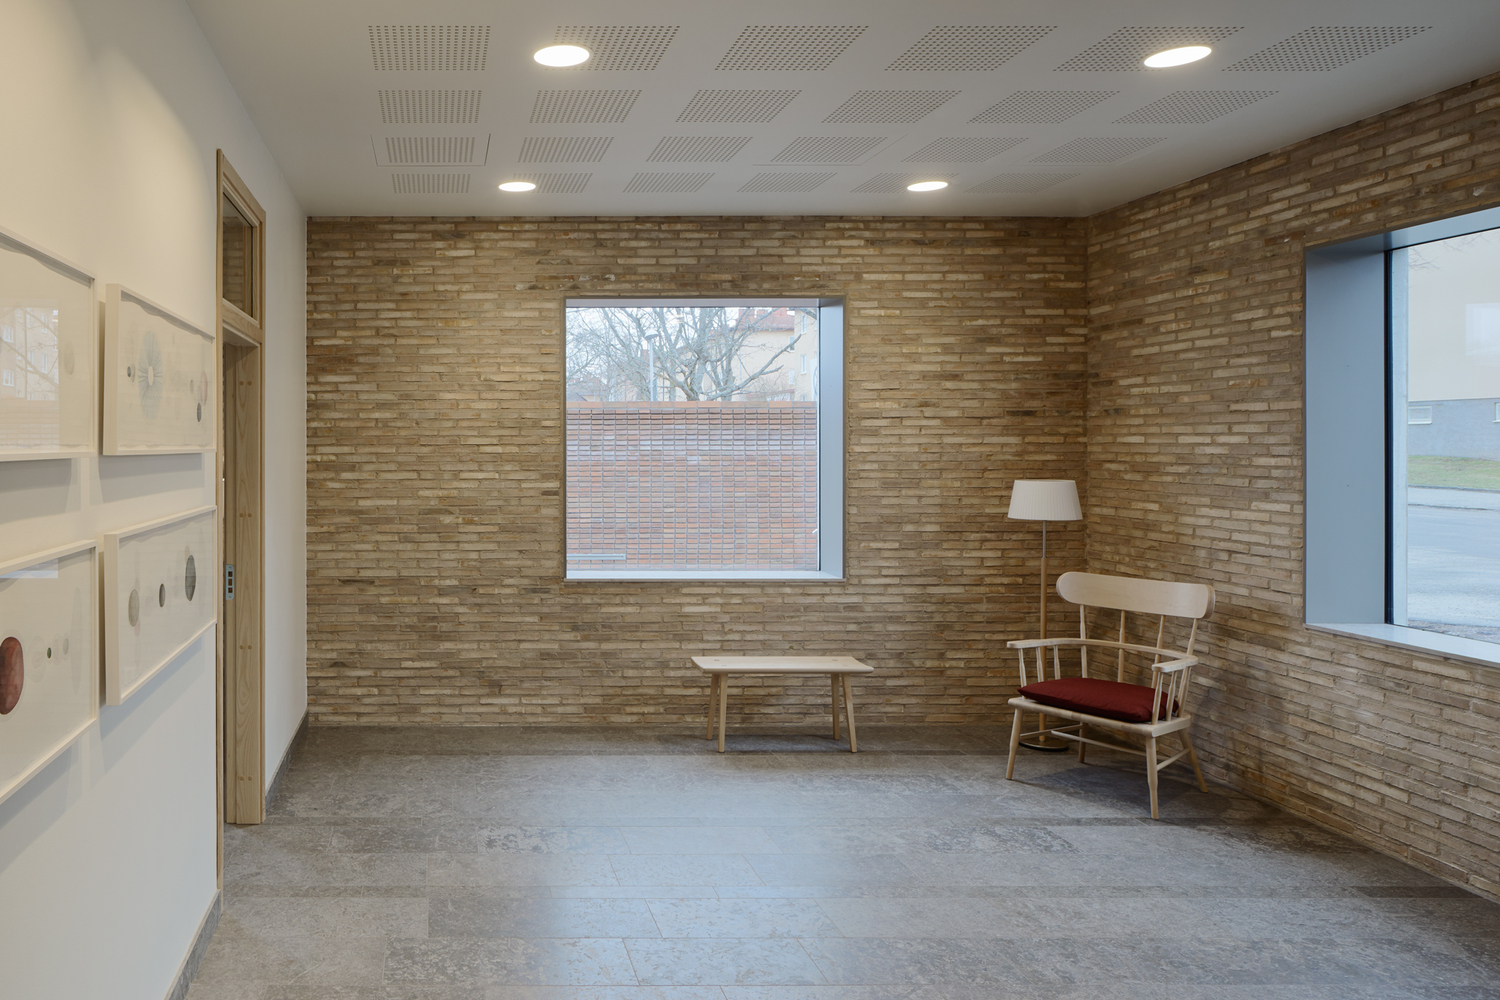 Great Intricate Brick Details And Polished Concrete Window Frames | Inspirationist